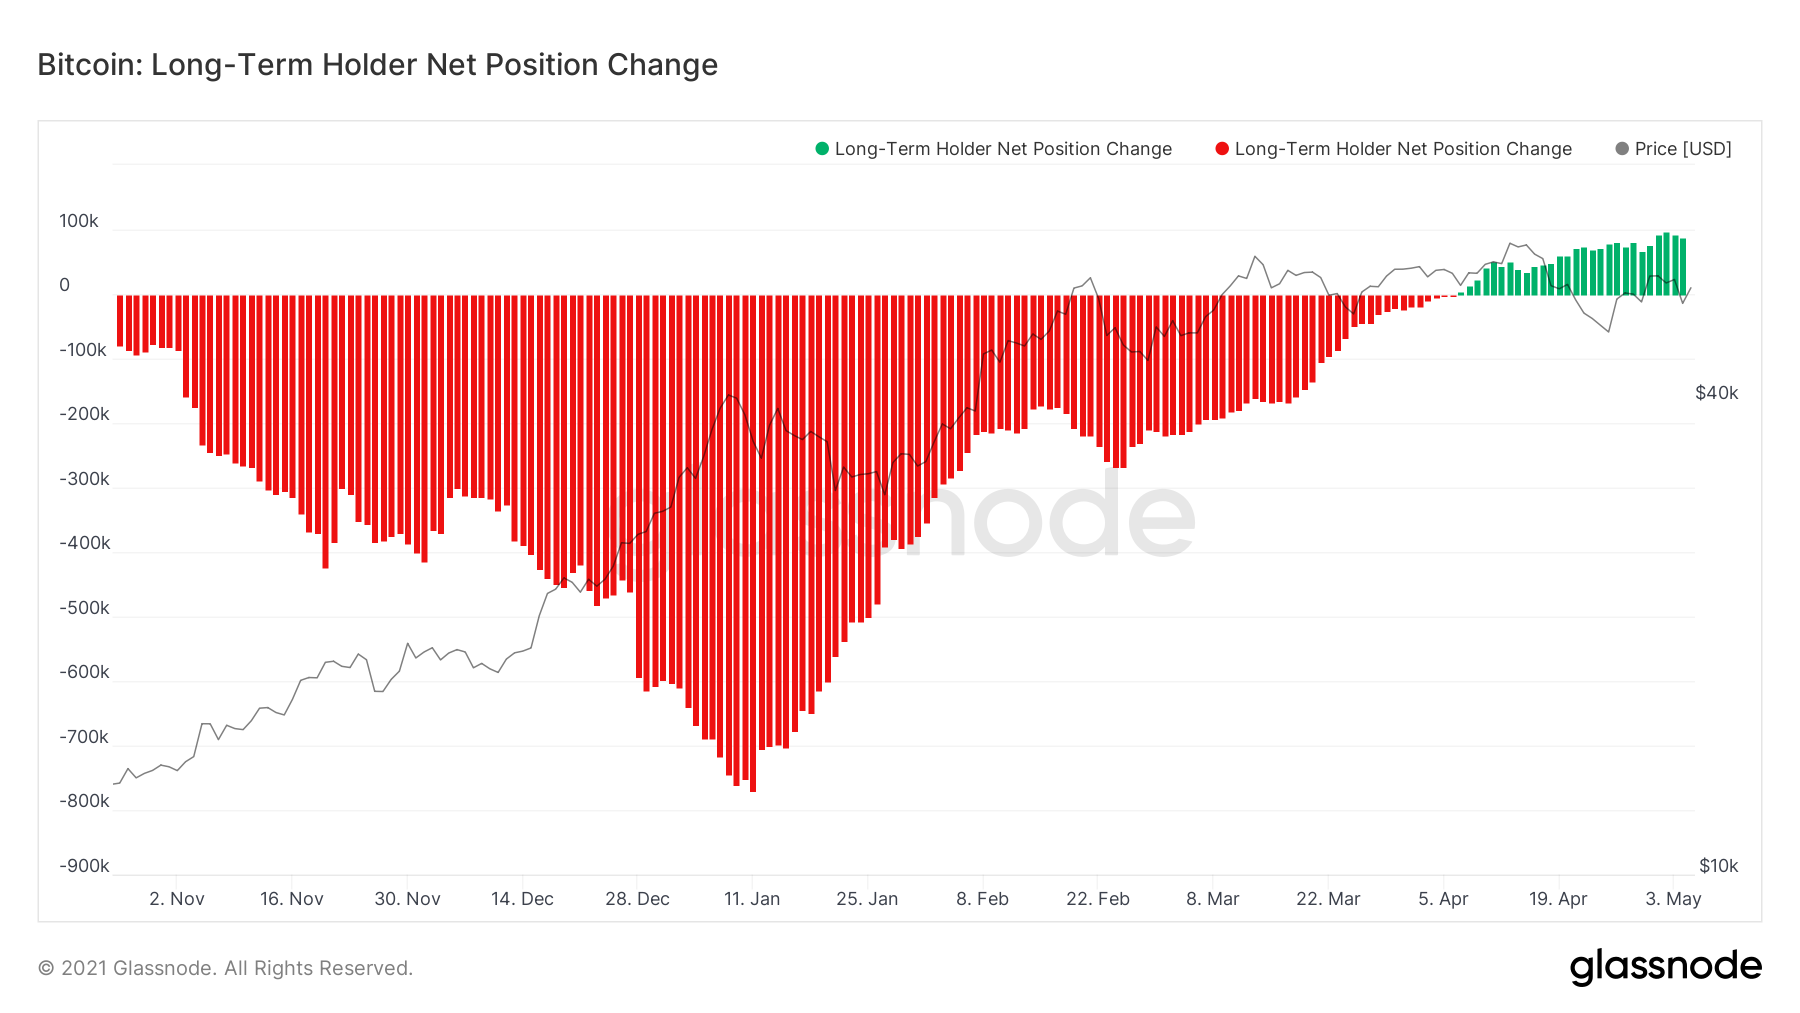 The monthly net position change of long-term holders, i.e. the 30 day change in supply held by long term holders.